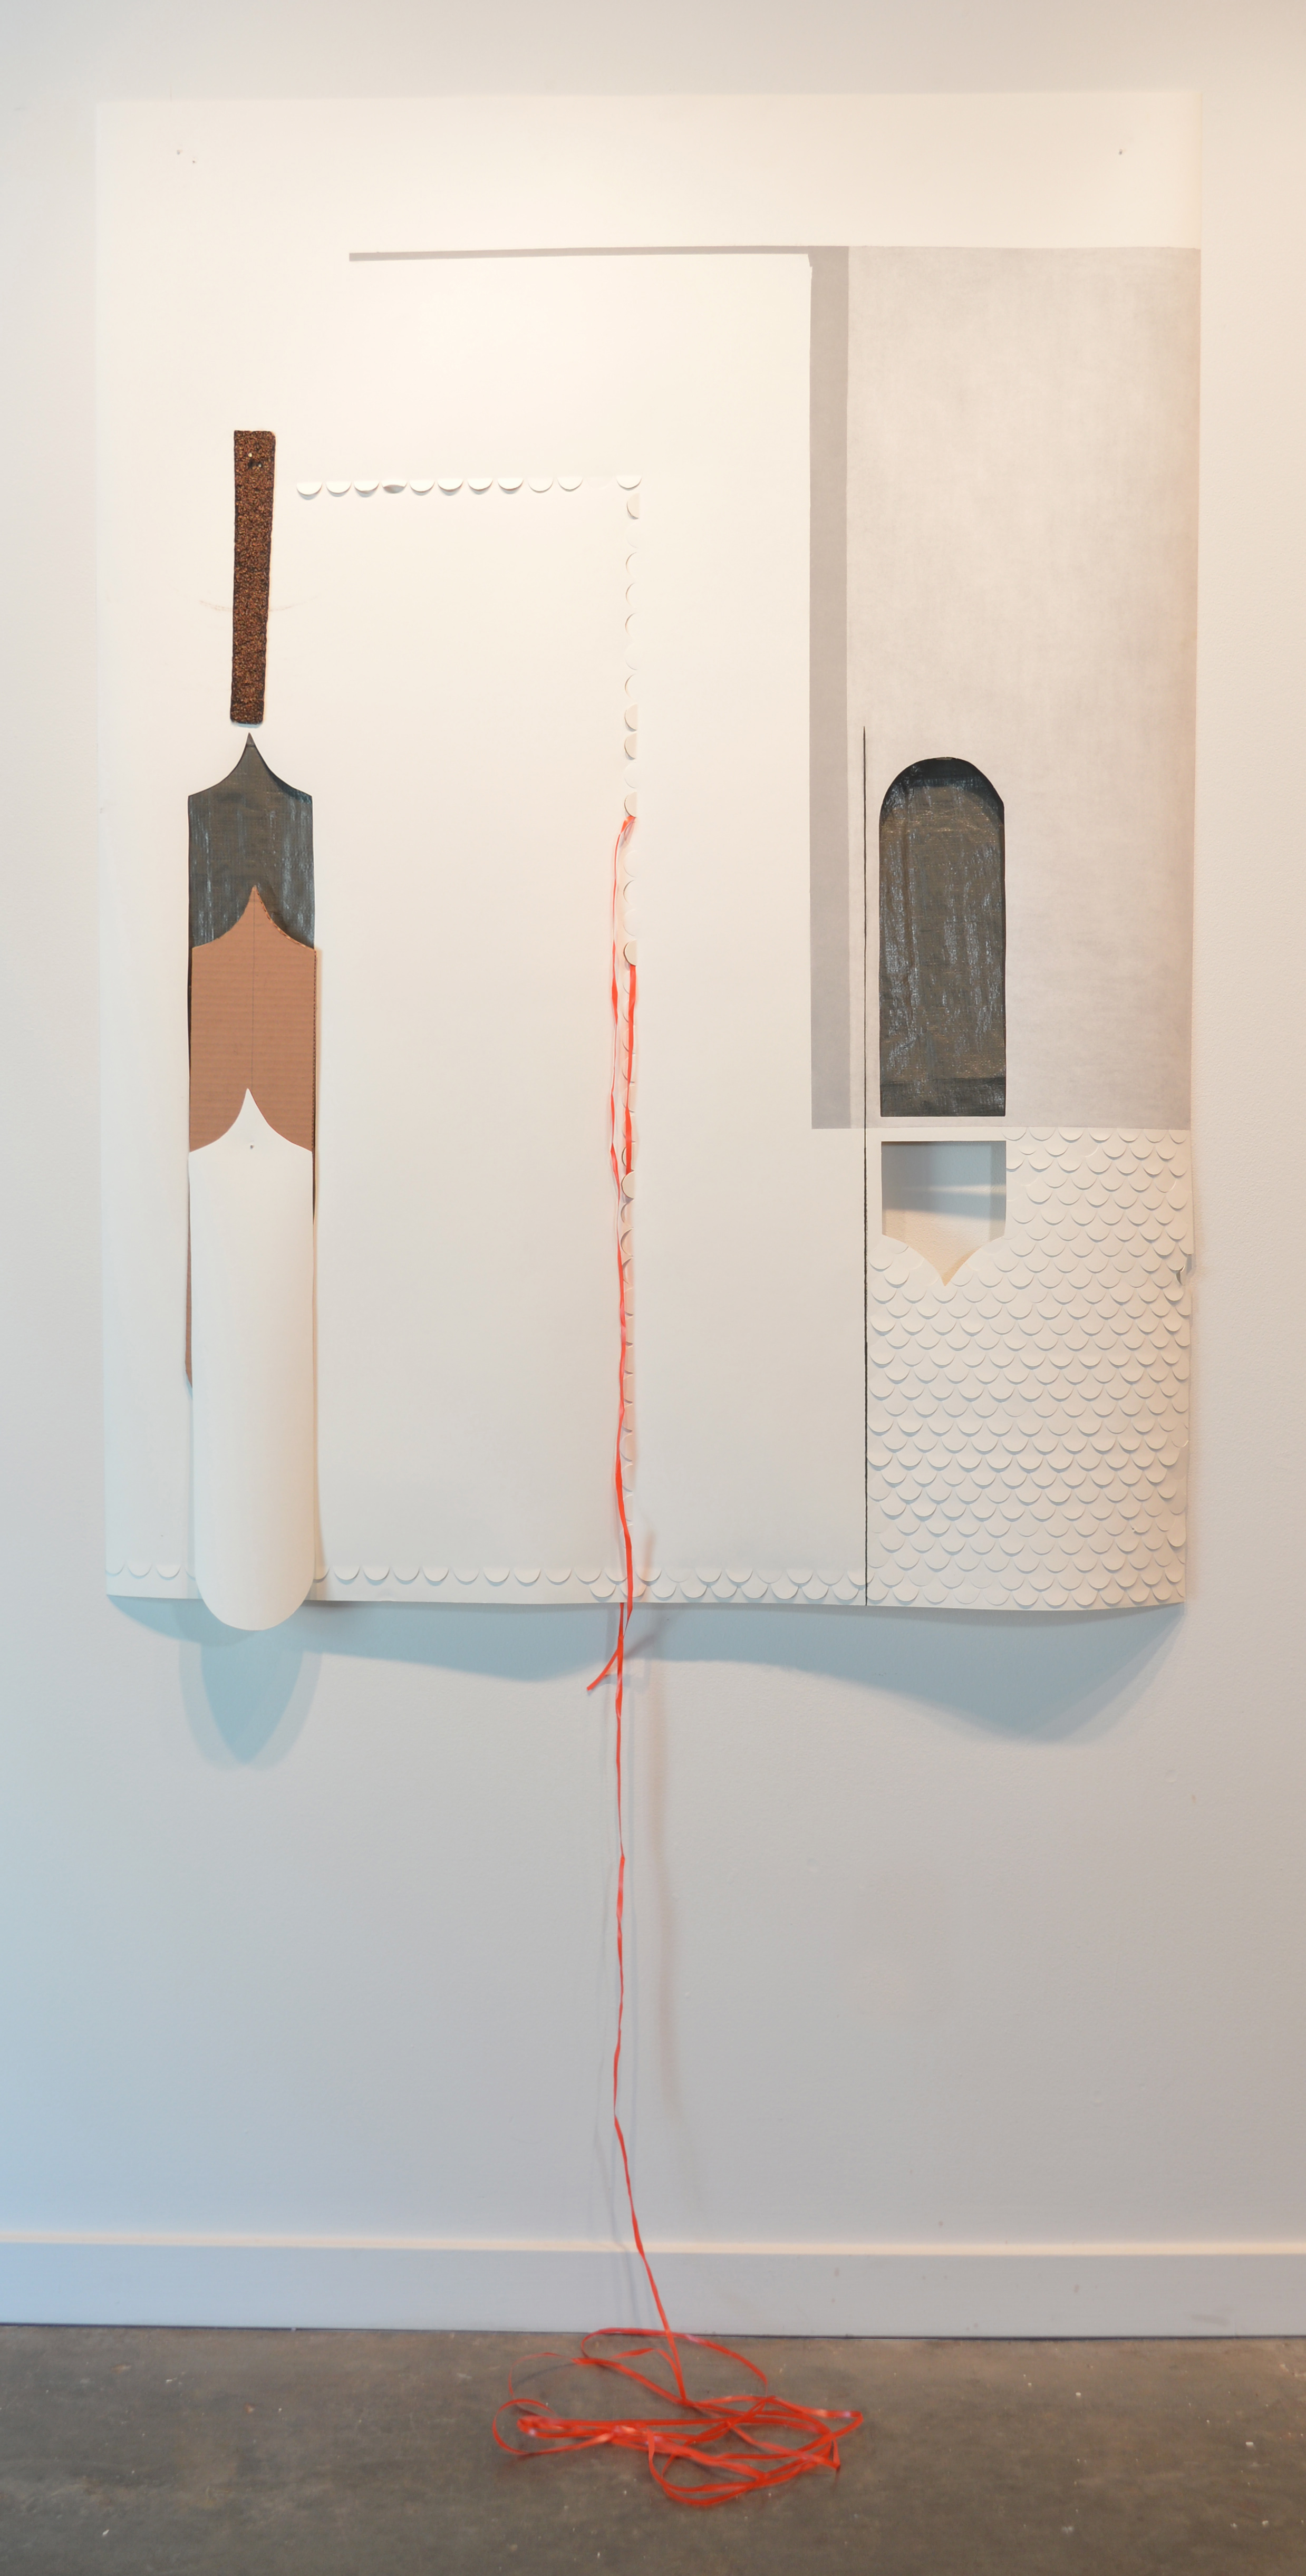 Krista Clark   Pocked Containment,  2018  Paper, cardboard, roofing, tarp, pastel, and construction paper  69H x 43W inches